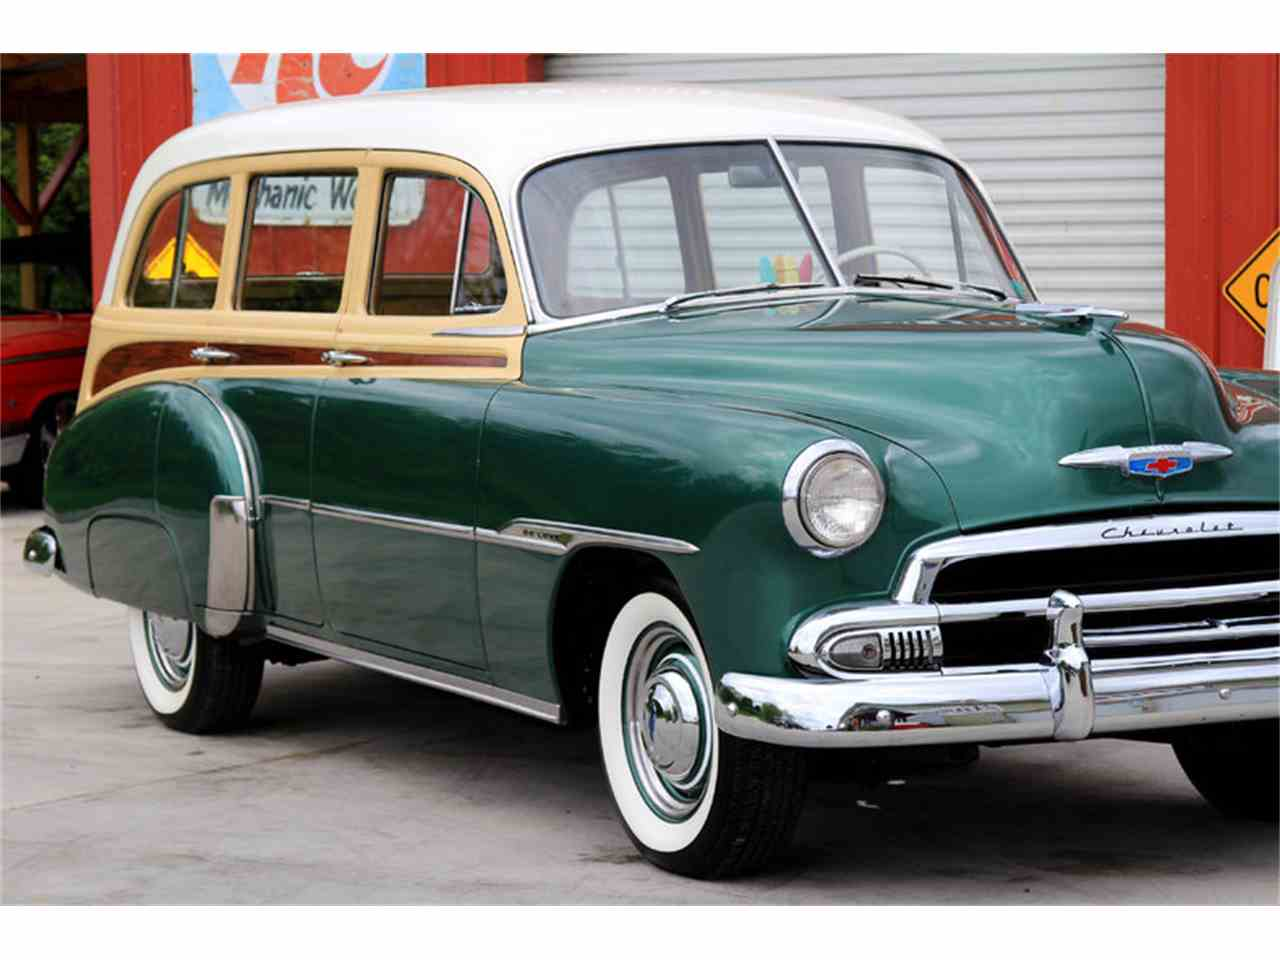 All Chevy 1951 chevy deluxe for sale : 1951 Chevrolet Deluxe for Sale | ClassicCars.com | CC-728387